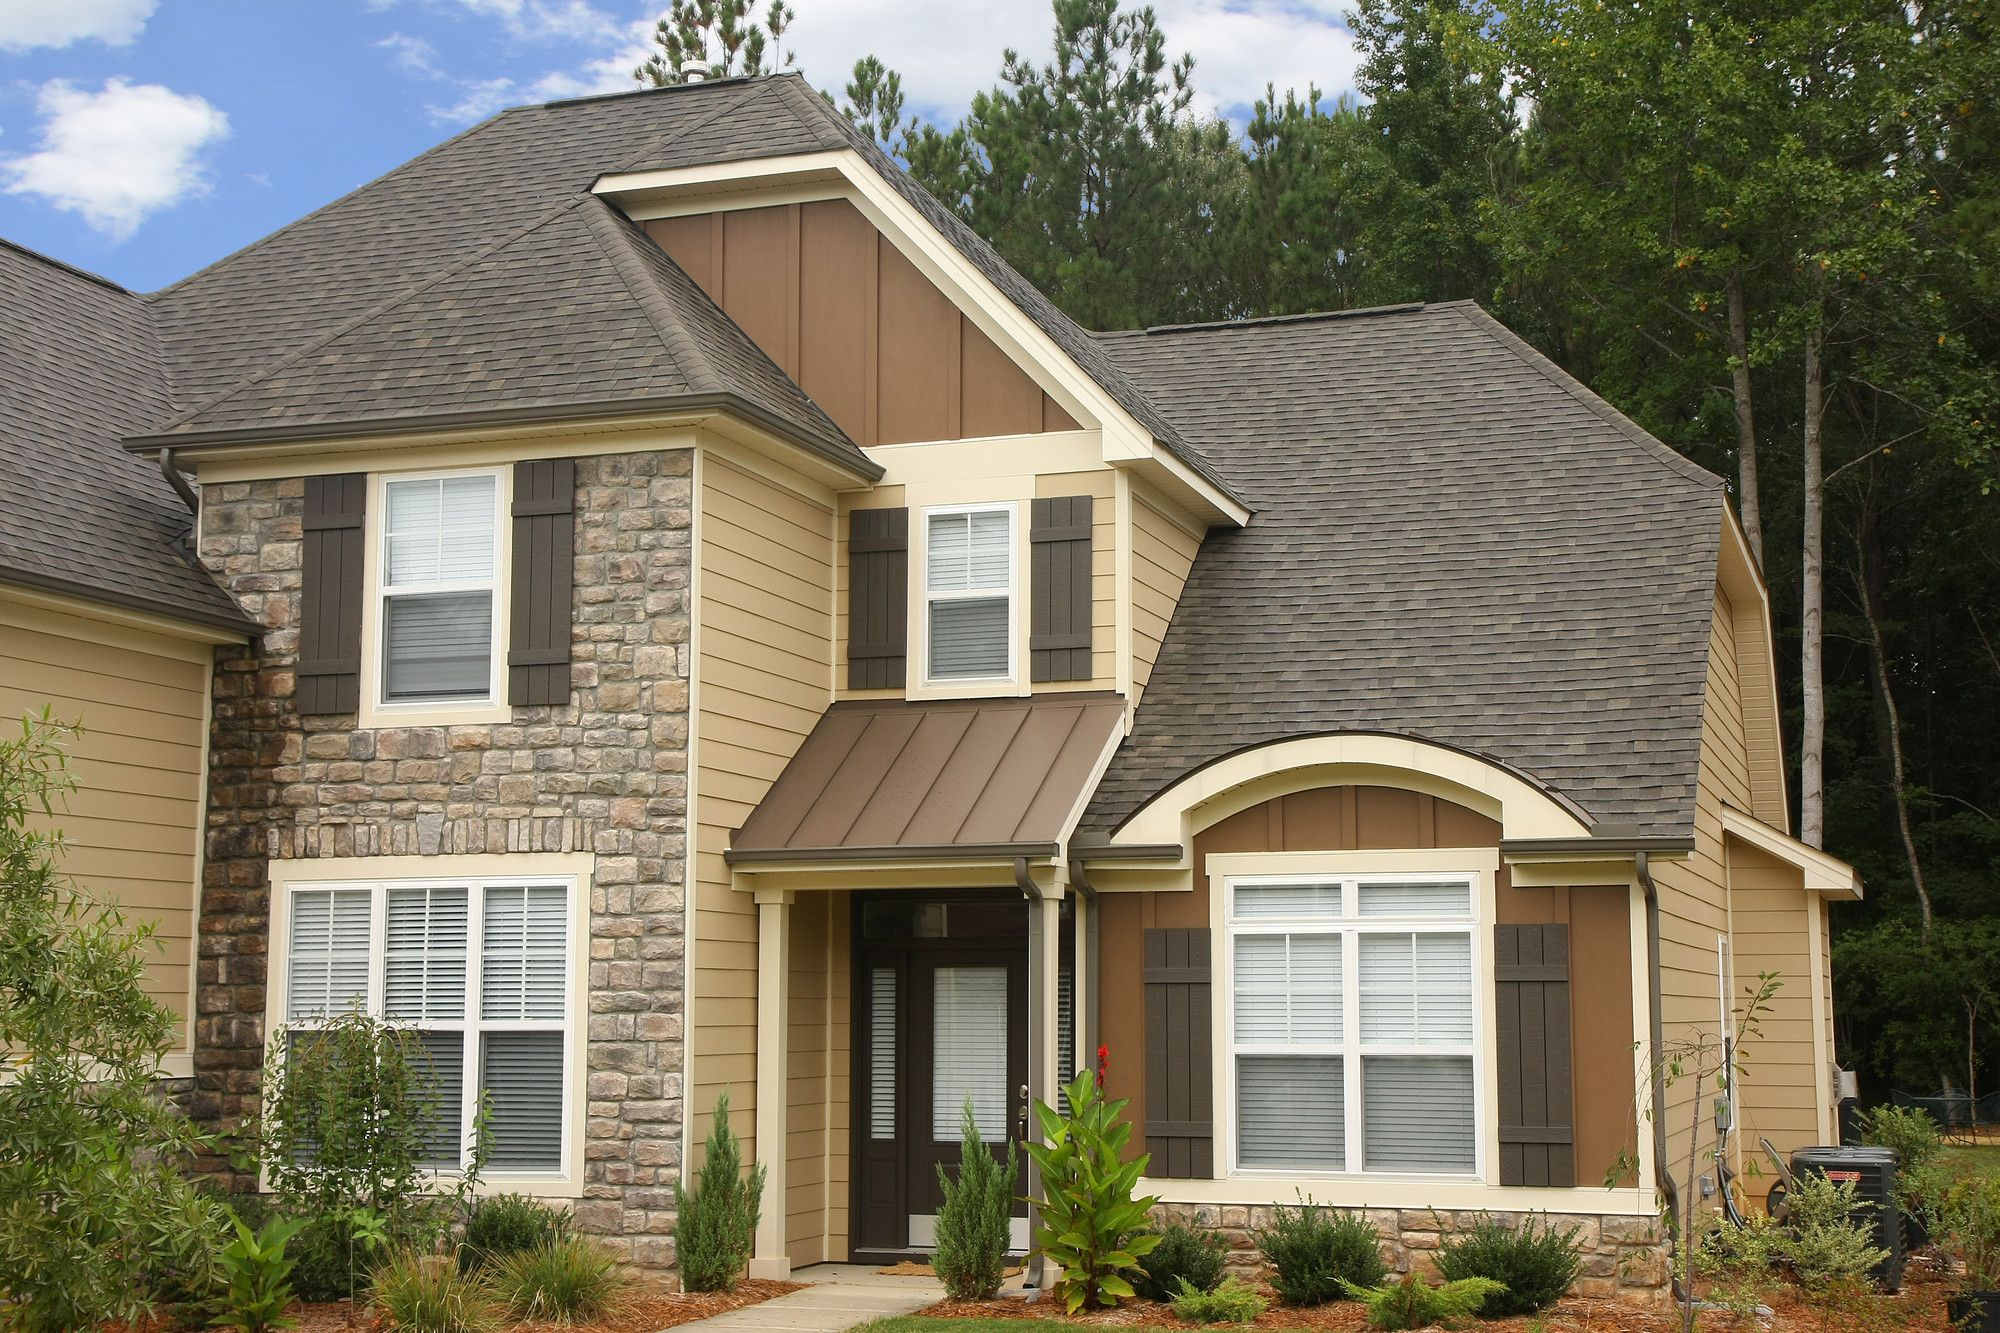 Image Of Most Popular Types Of Siding For Homes House Exterior House Siding Hardy Plank Siding